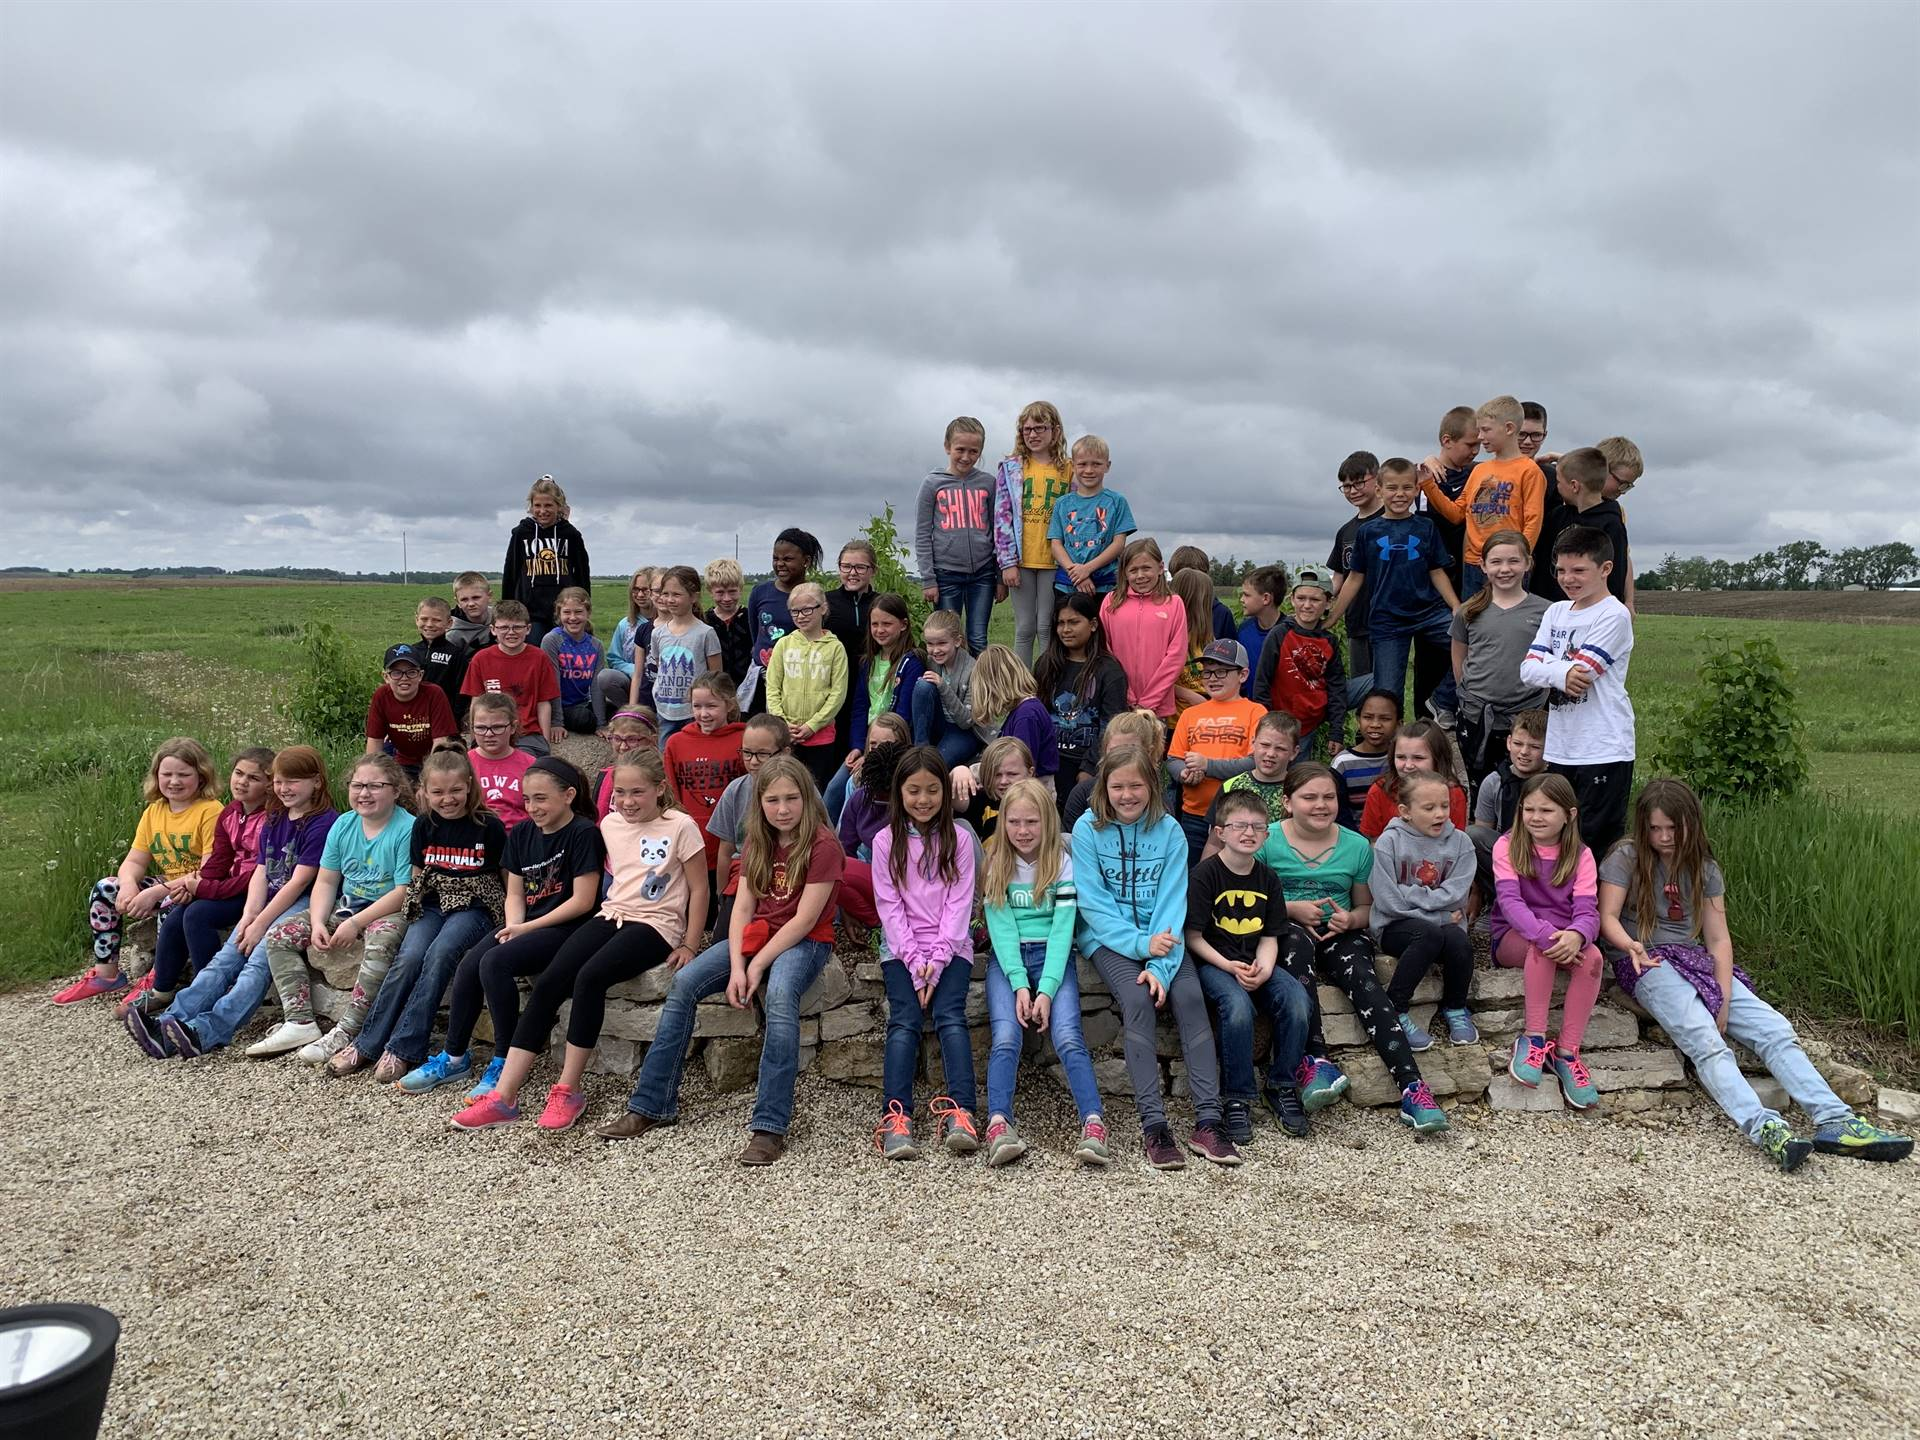 Students lined up for photo at the Fossil & Prairie Center